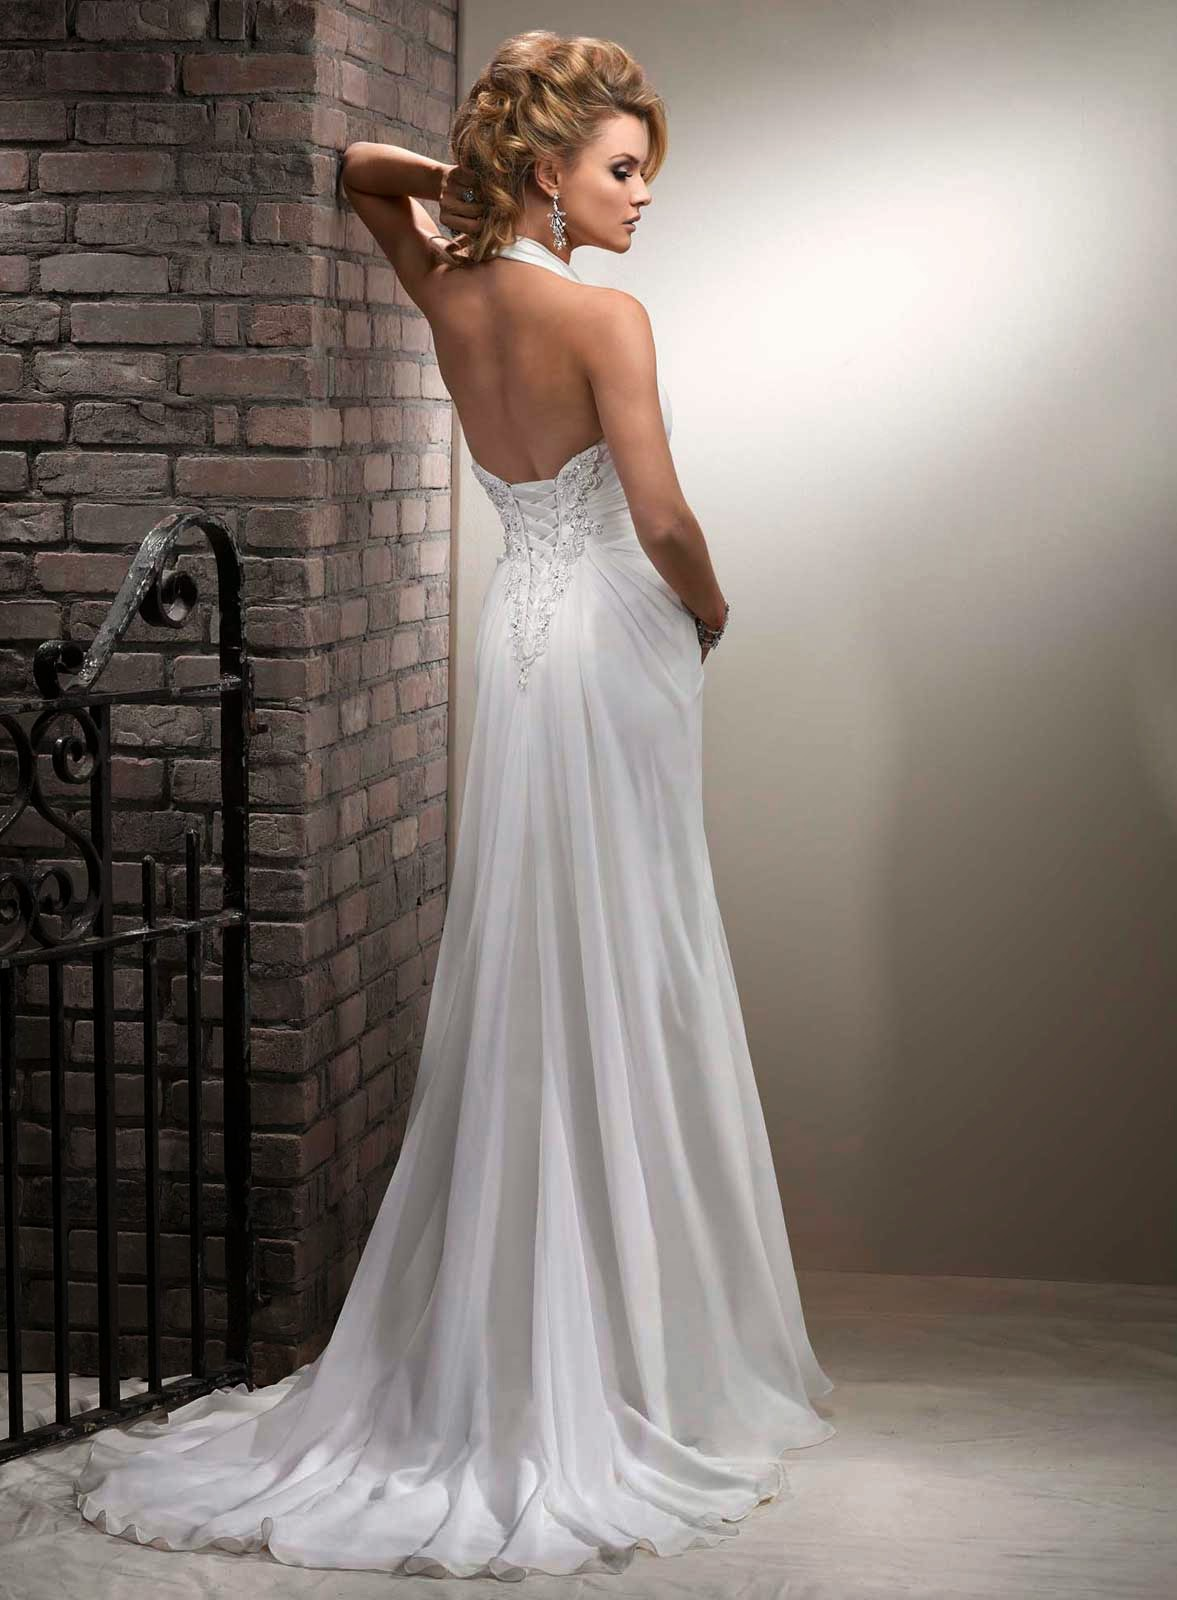 Wedding Dresses For Older Brides In  : Wedding dresses ideas for older brides categories dress